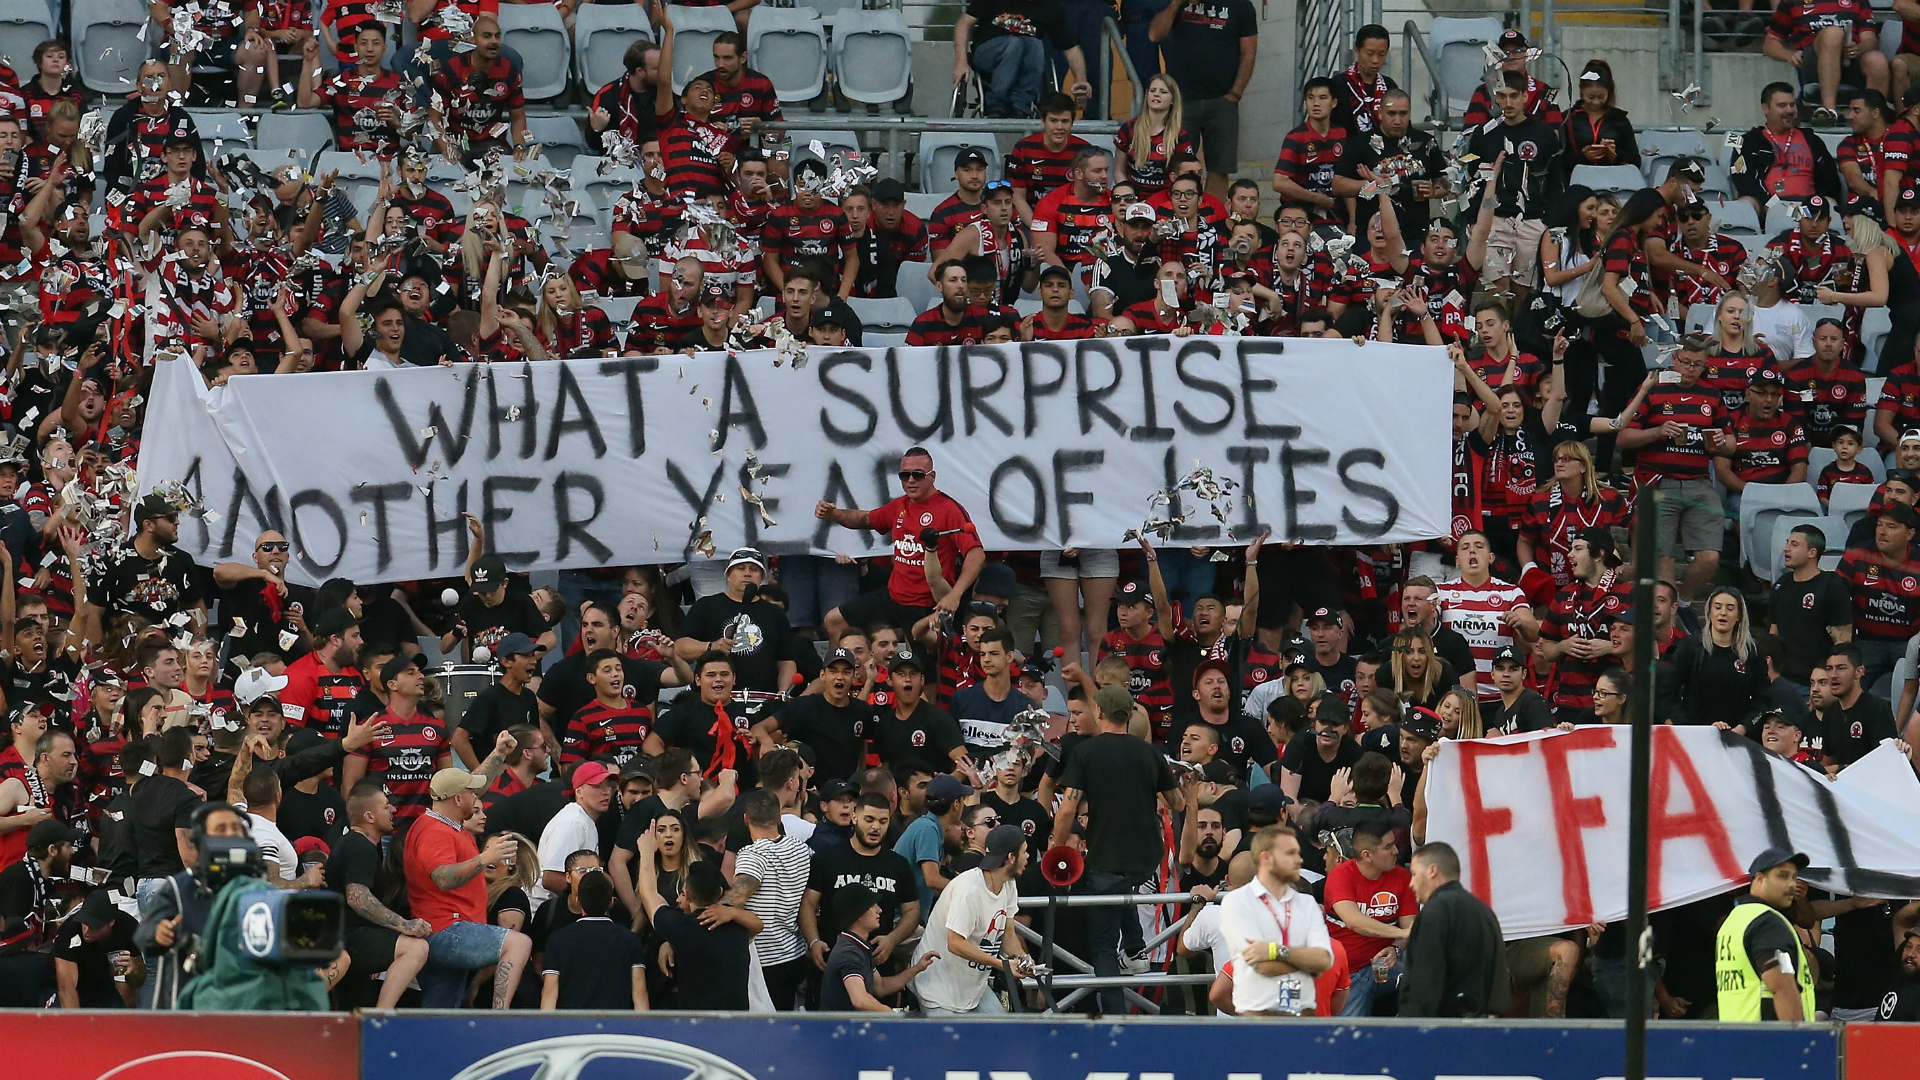 west sydney wanderers news24 - photo#33